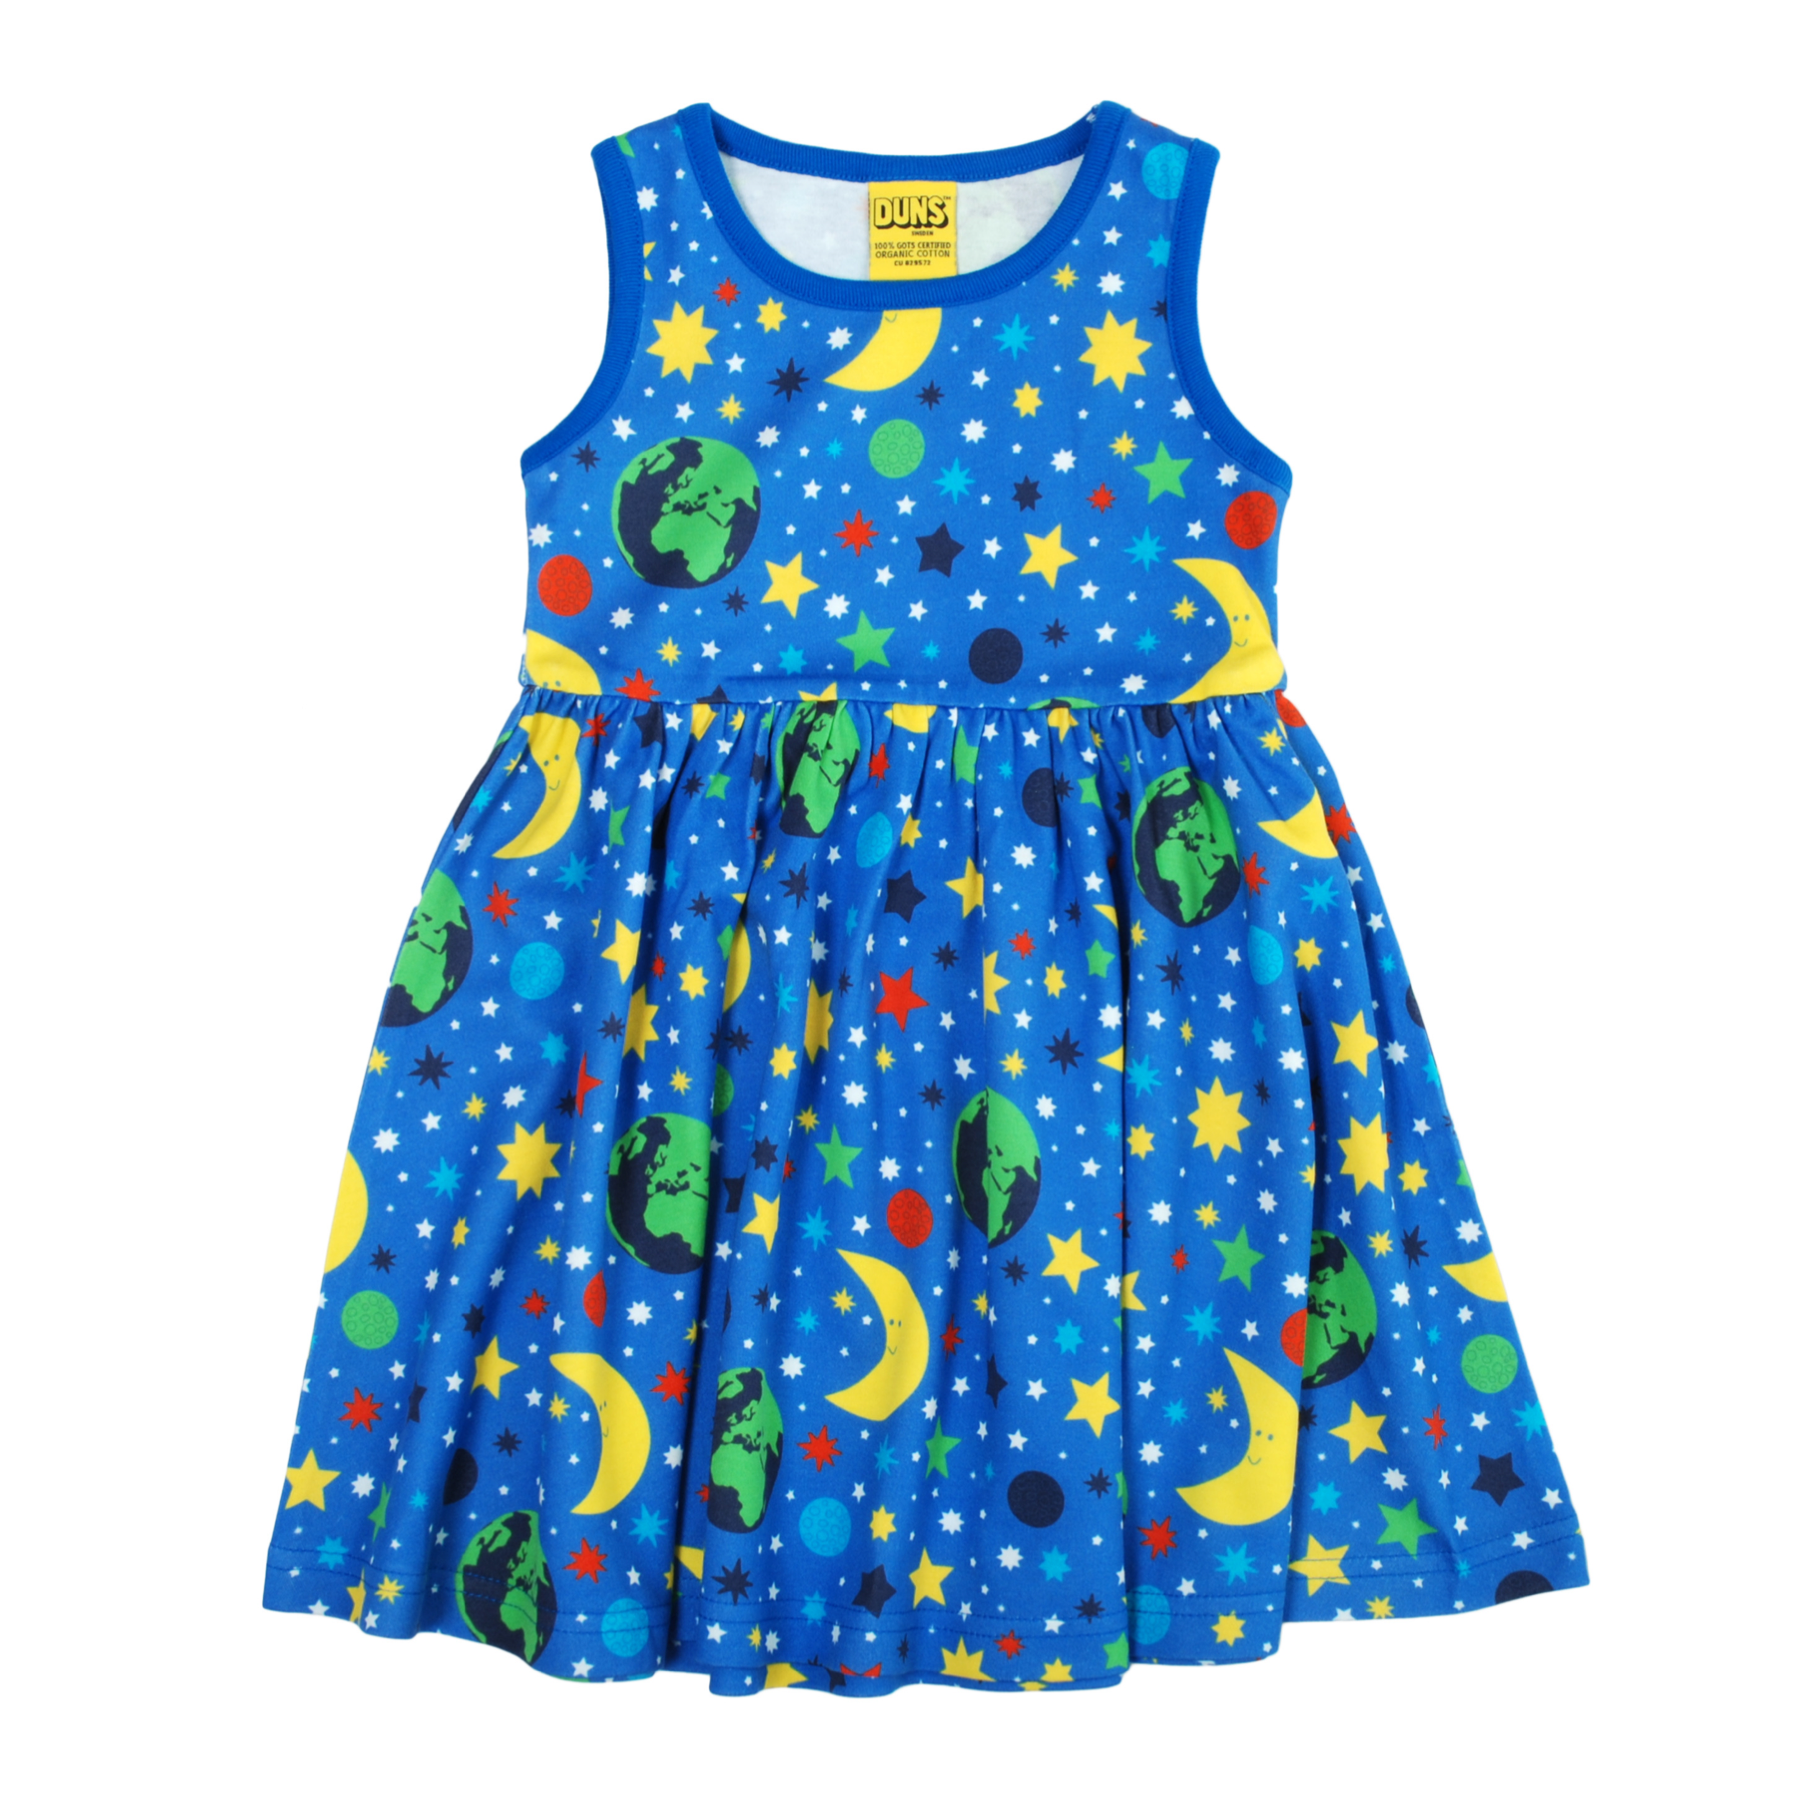 DUNS Sweden Dress Twirly Sleeveless Mother Earth Blue